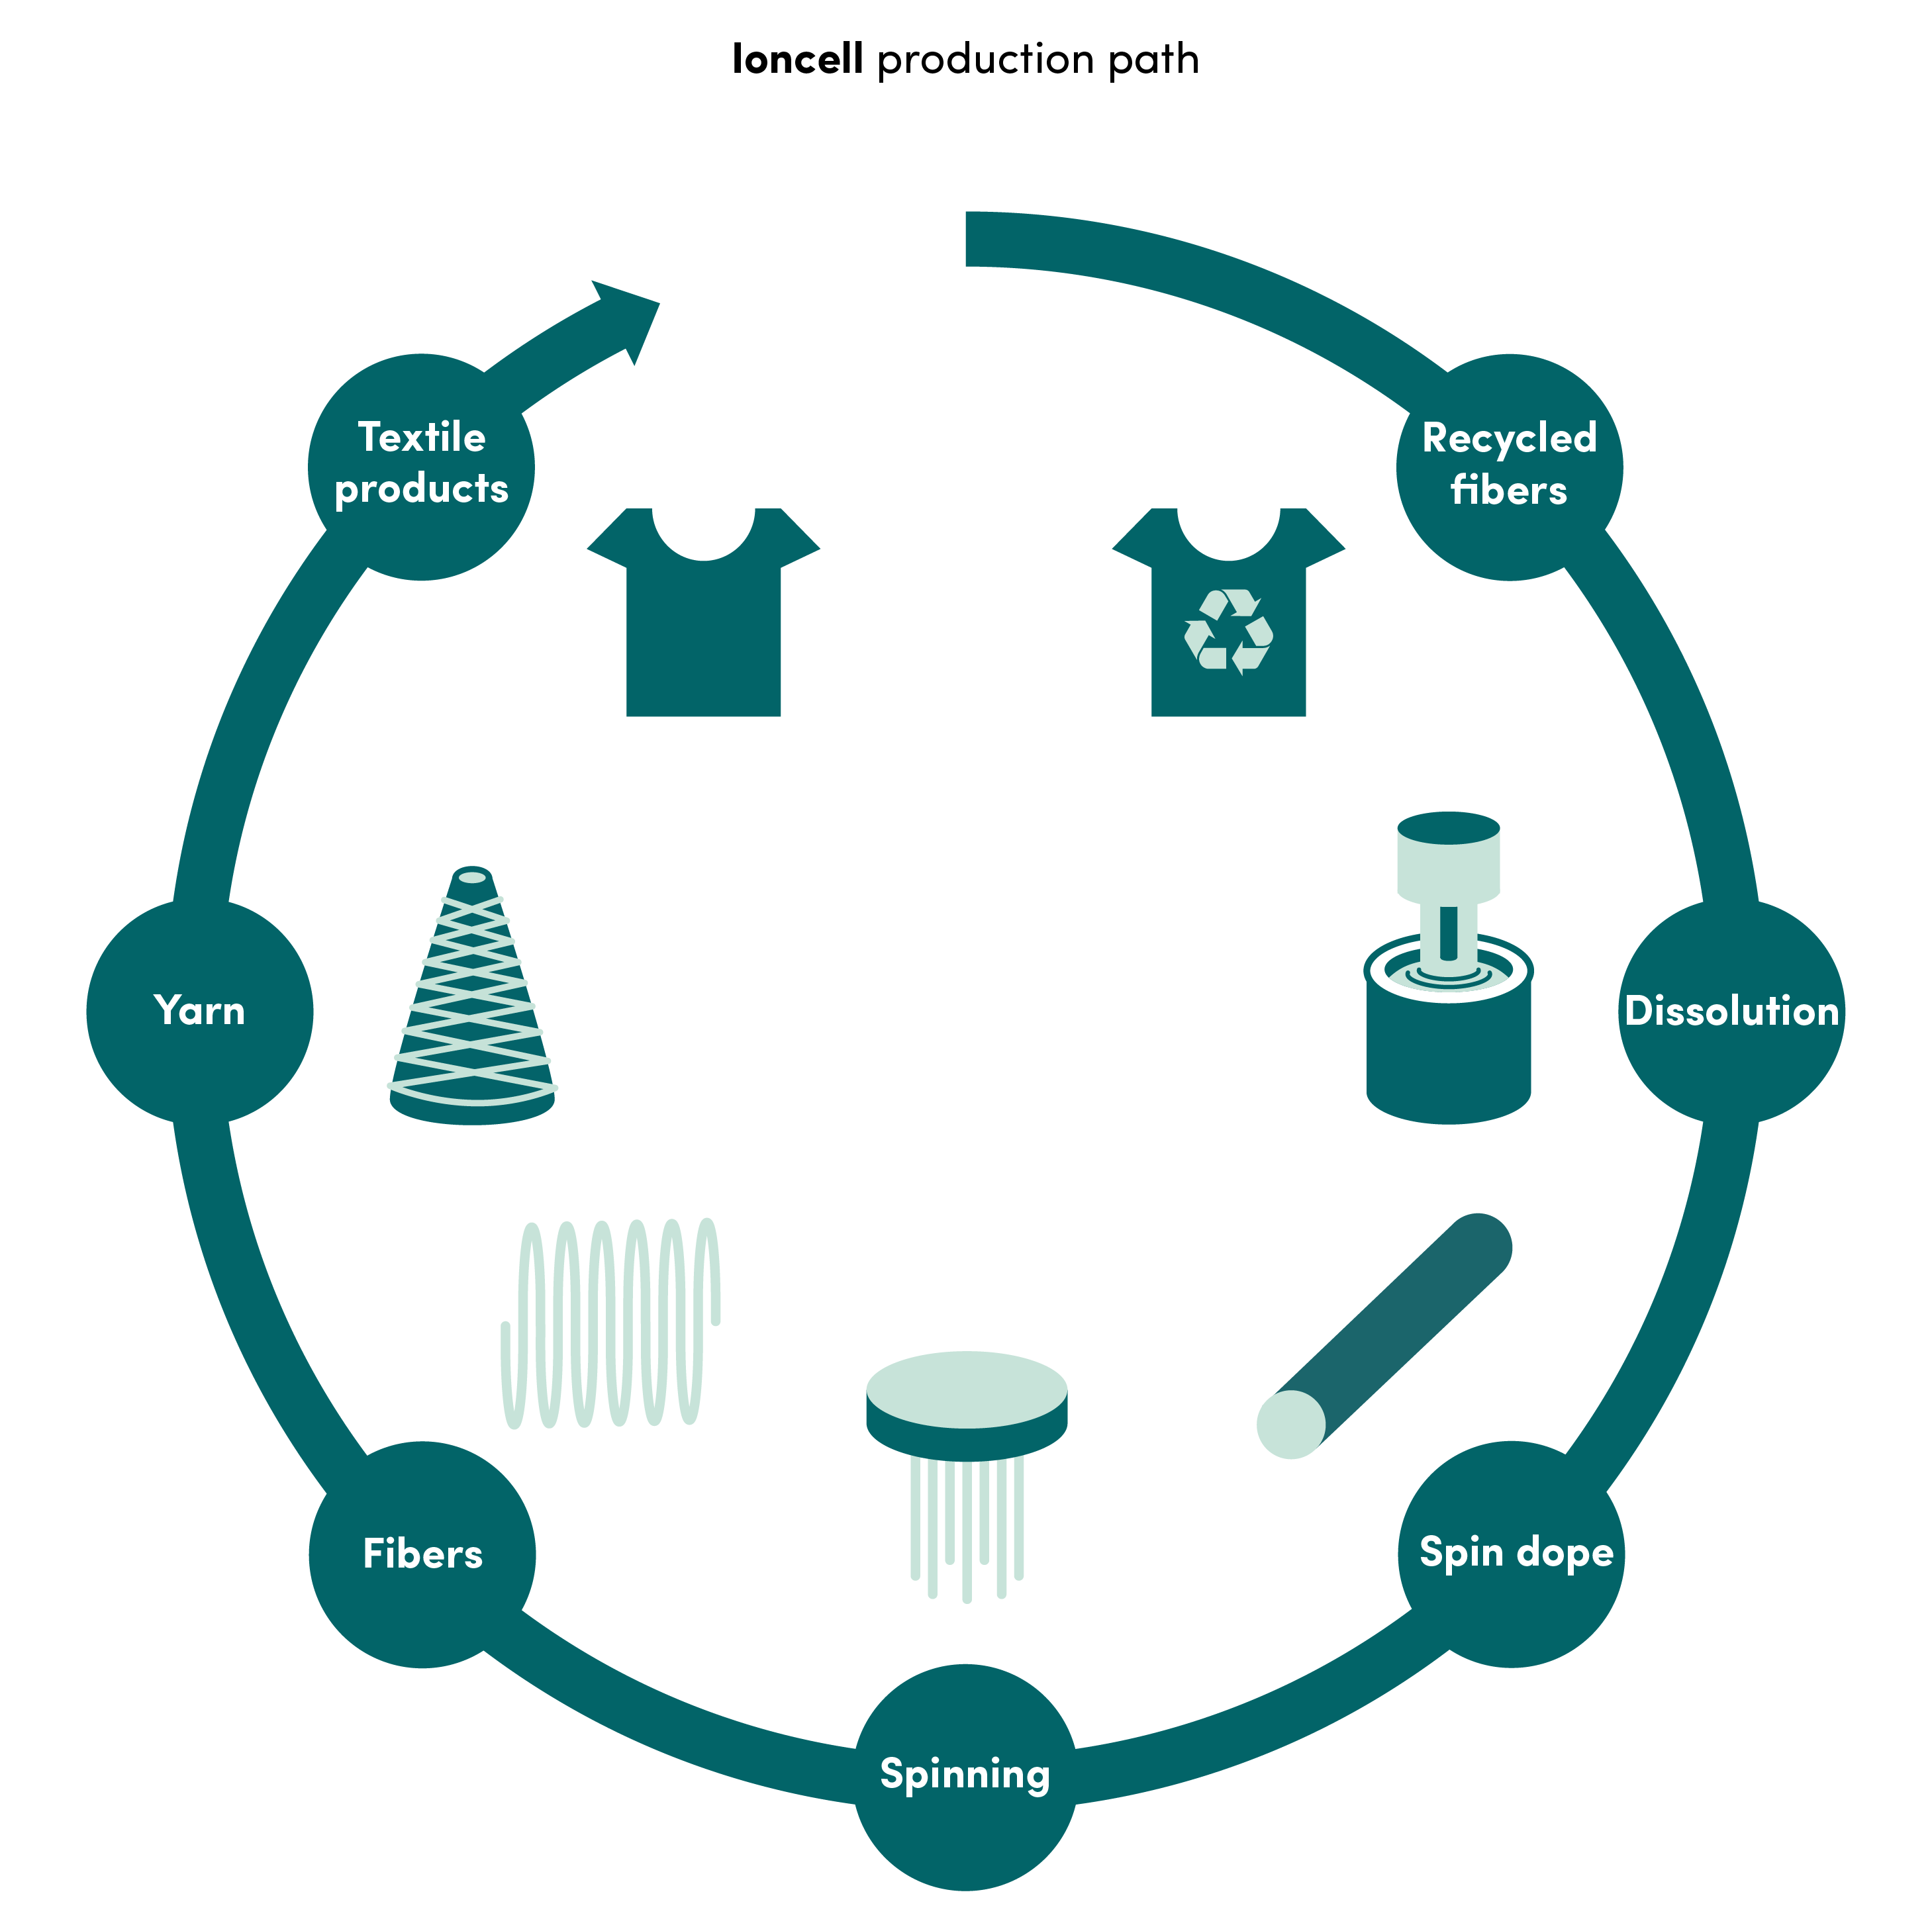 Ioncell production path